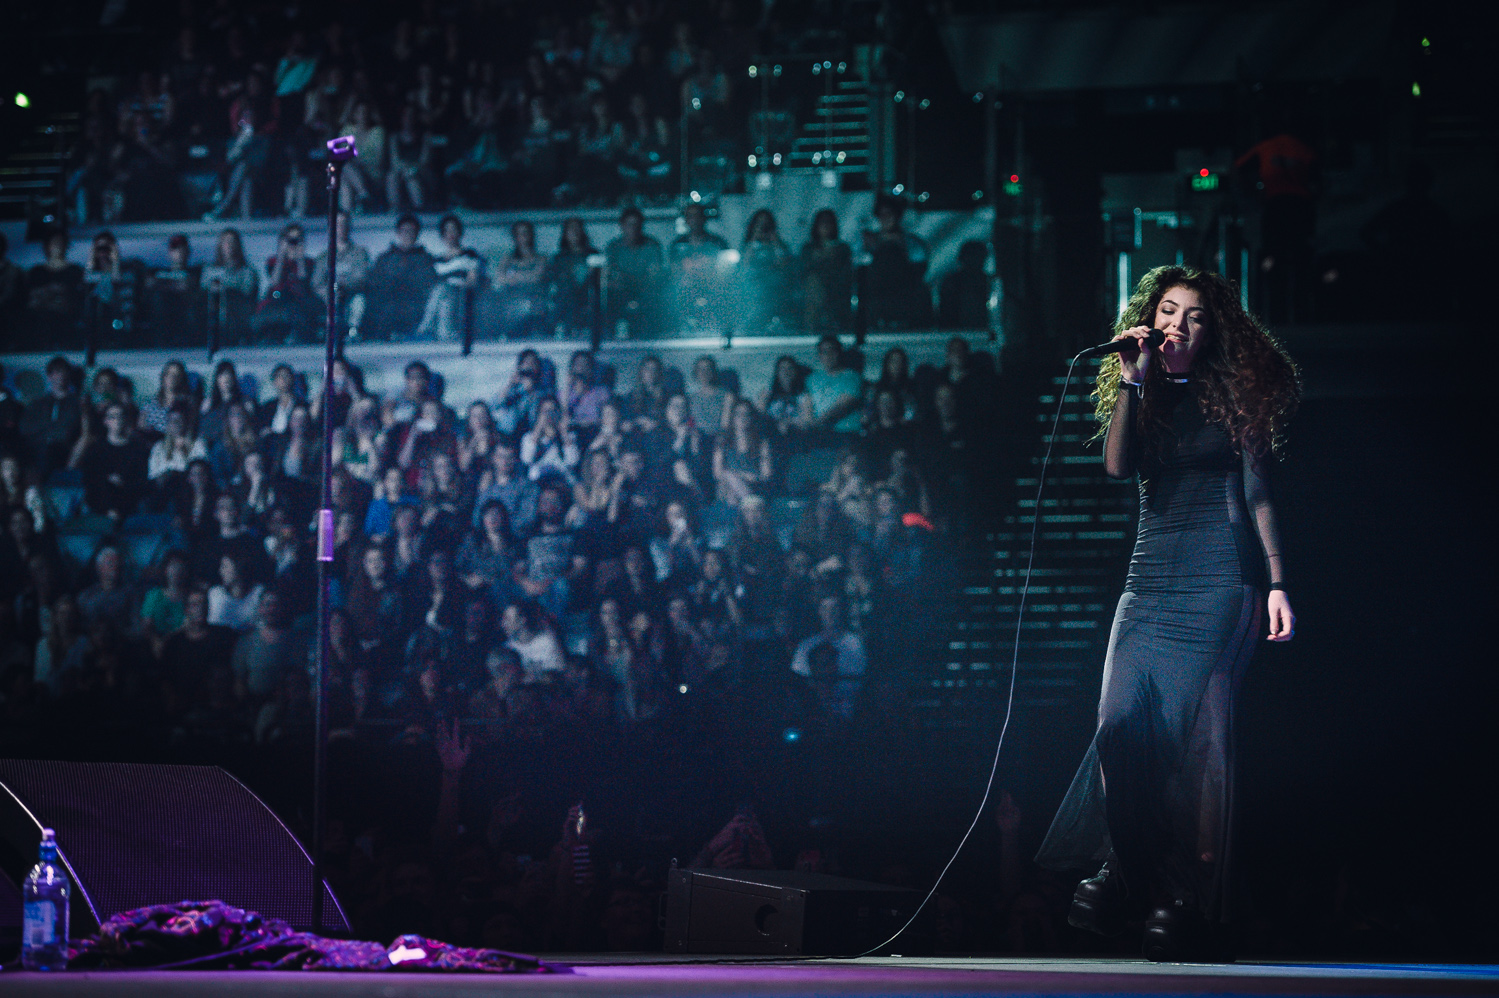 Lorde iHeart Radio_007_photo_©2013 Steve Dykes.jpg